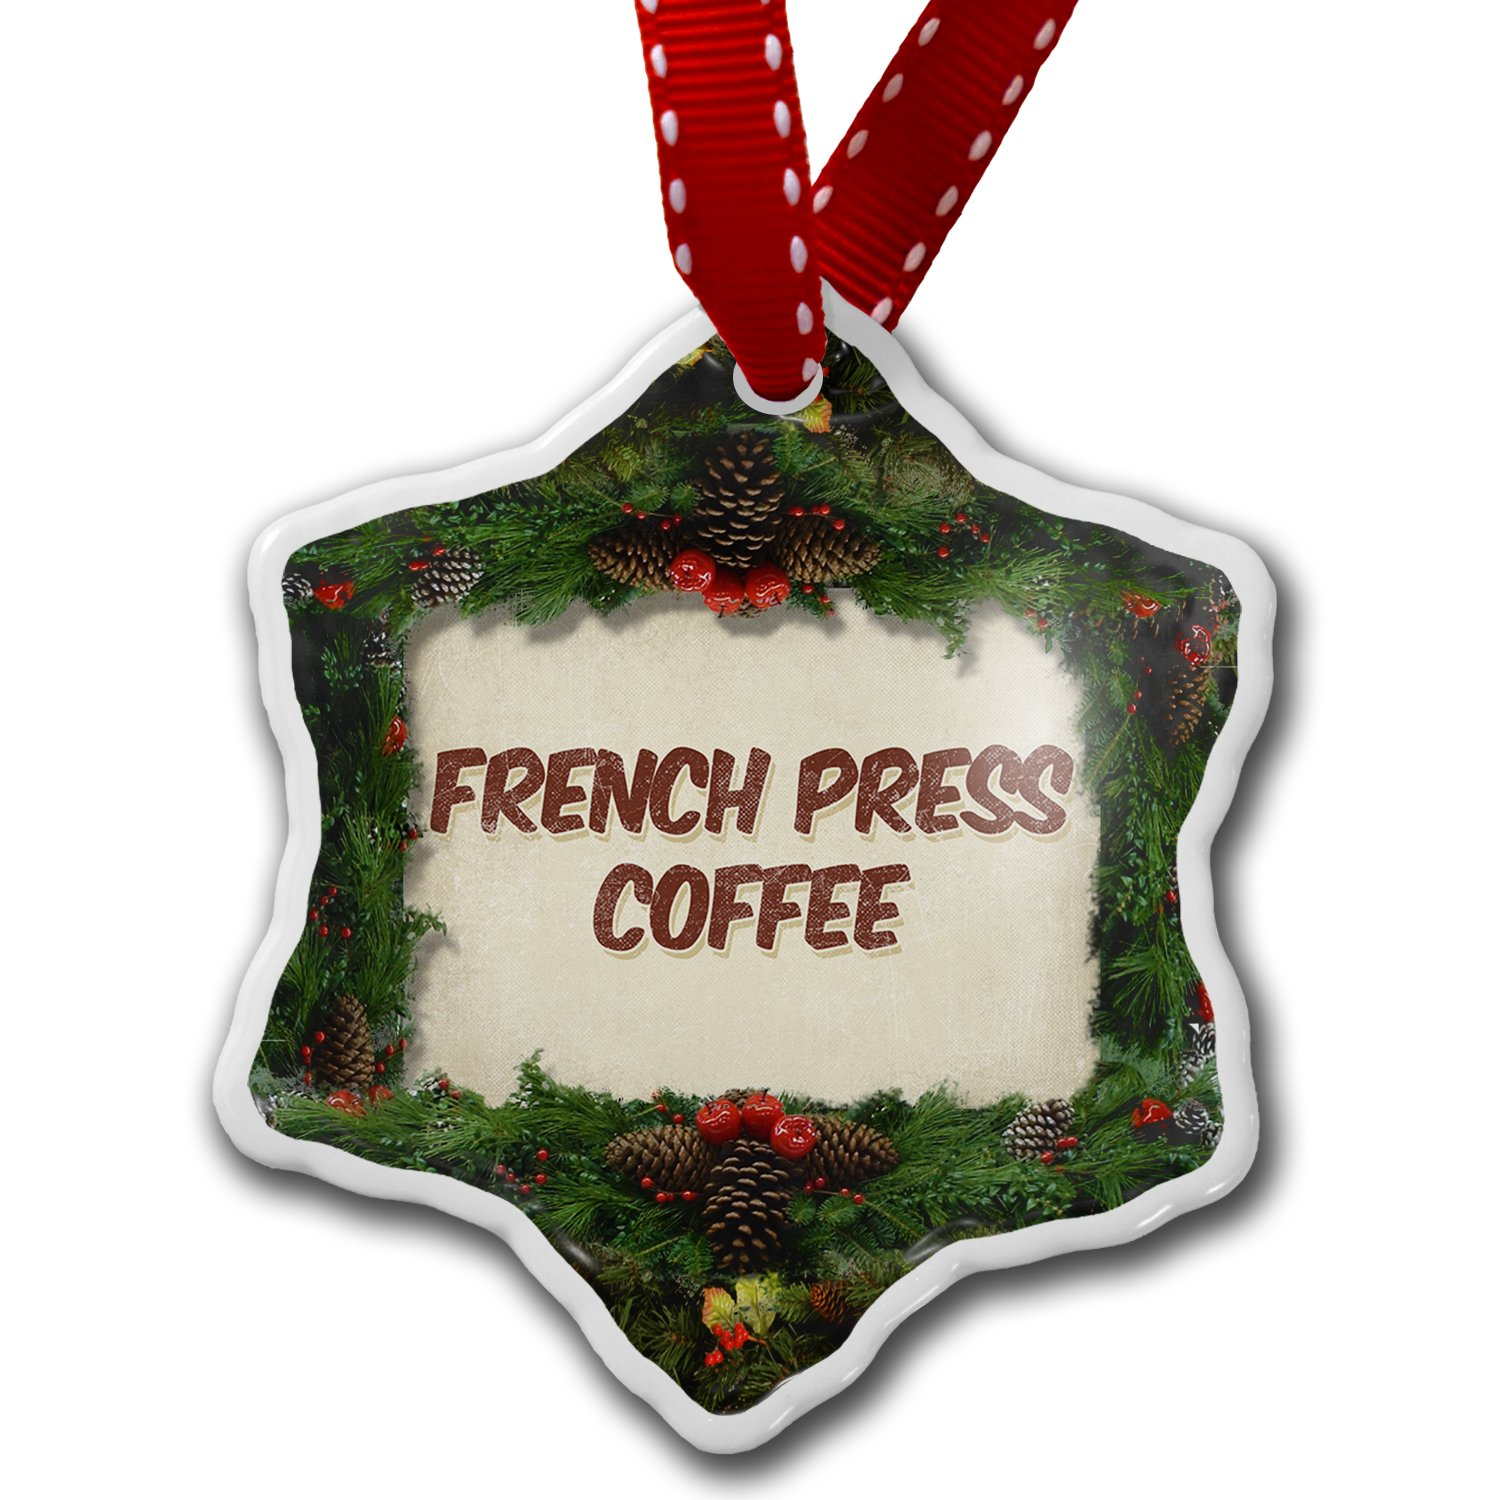 Amazon.com: Christmas Ornament French Press Coffee, Vintage style ...